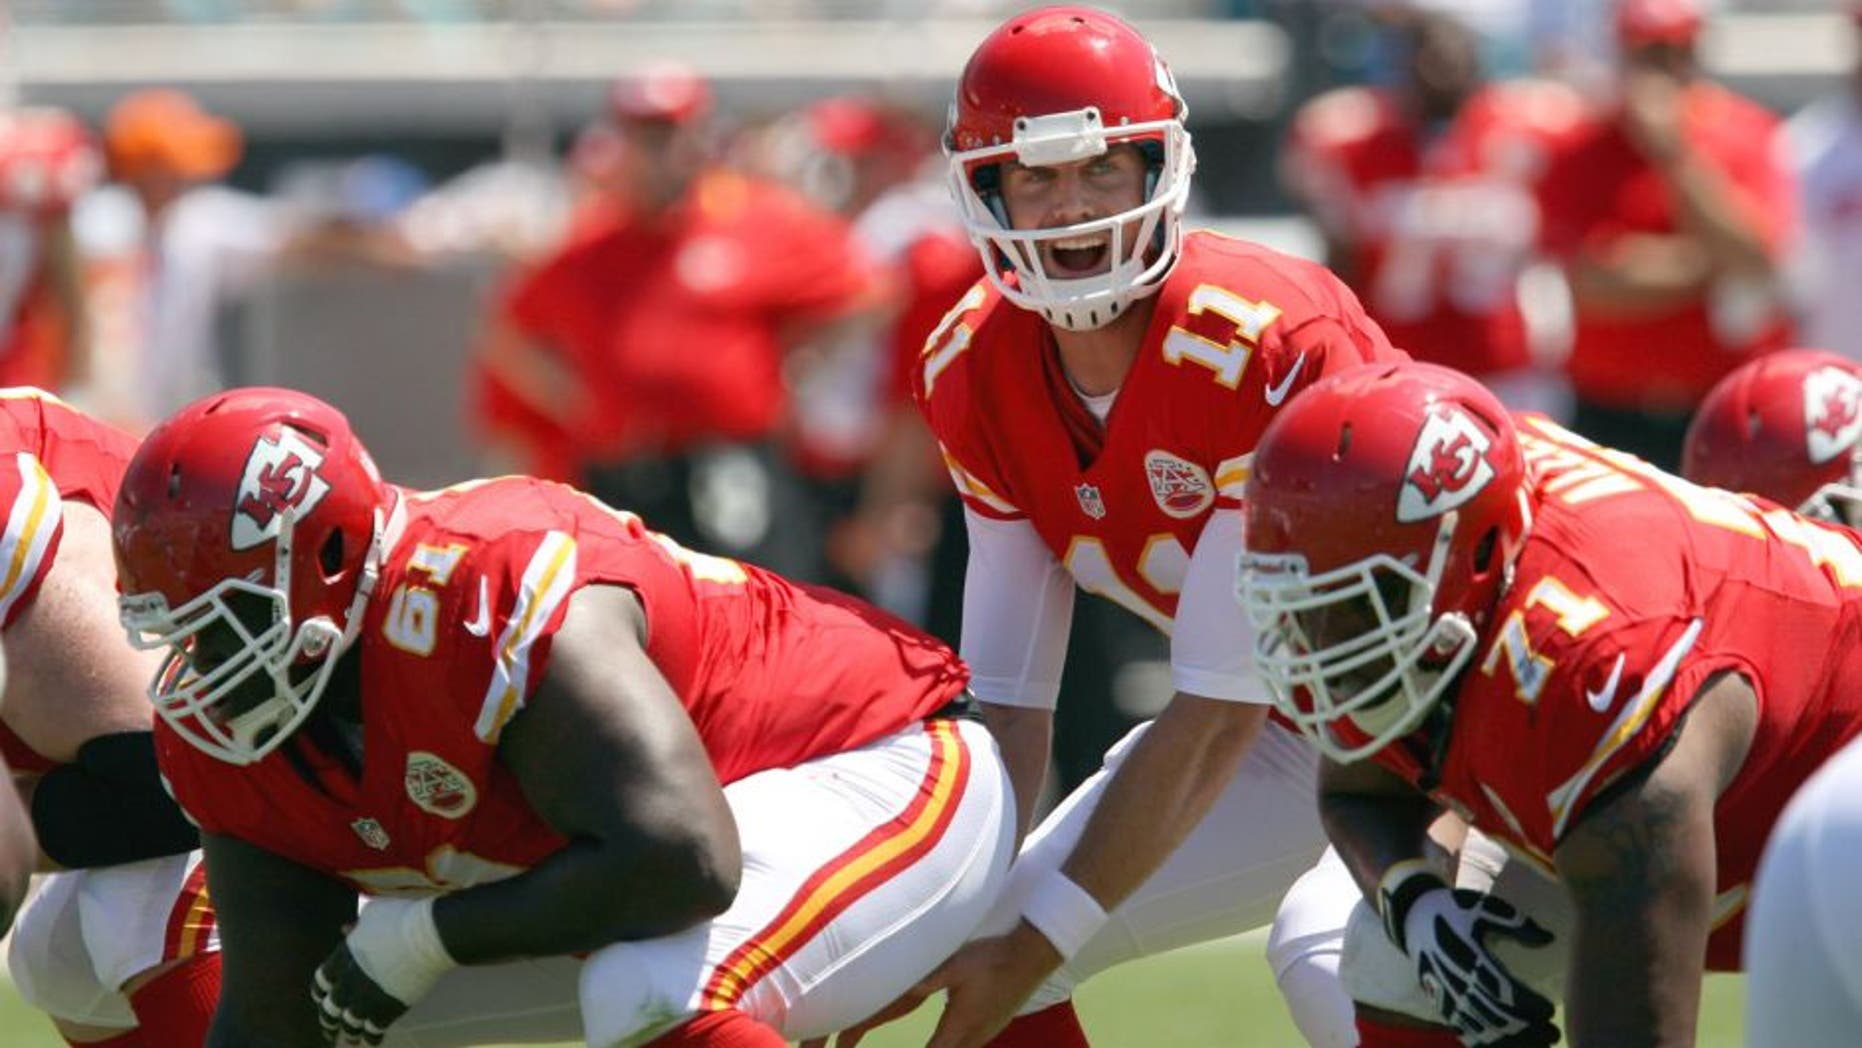 Sep 8, 2013; Jacksonville, FL, USA; Kansas City Chiefs quarterback Alex Smith (11) yells to the offensive line during the game against the Jacksonville Jaguars at EverBank Field. Mandatory Credit: Rob Foldy-USA TODAY Sports